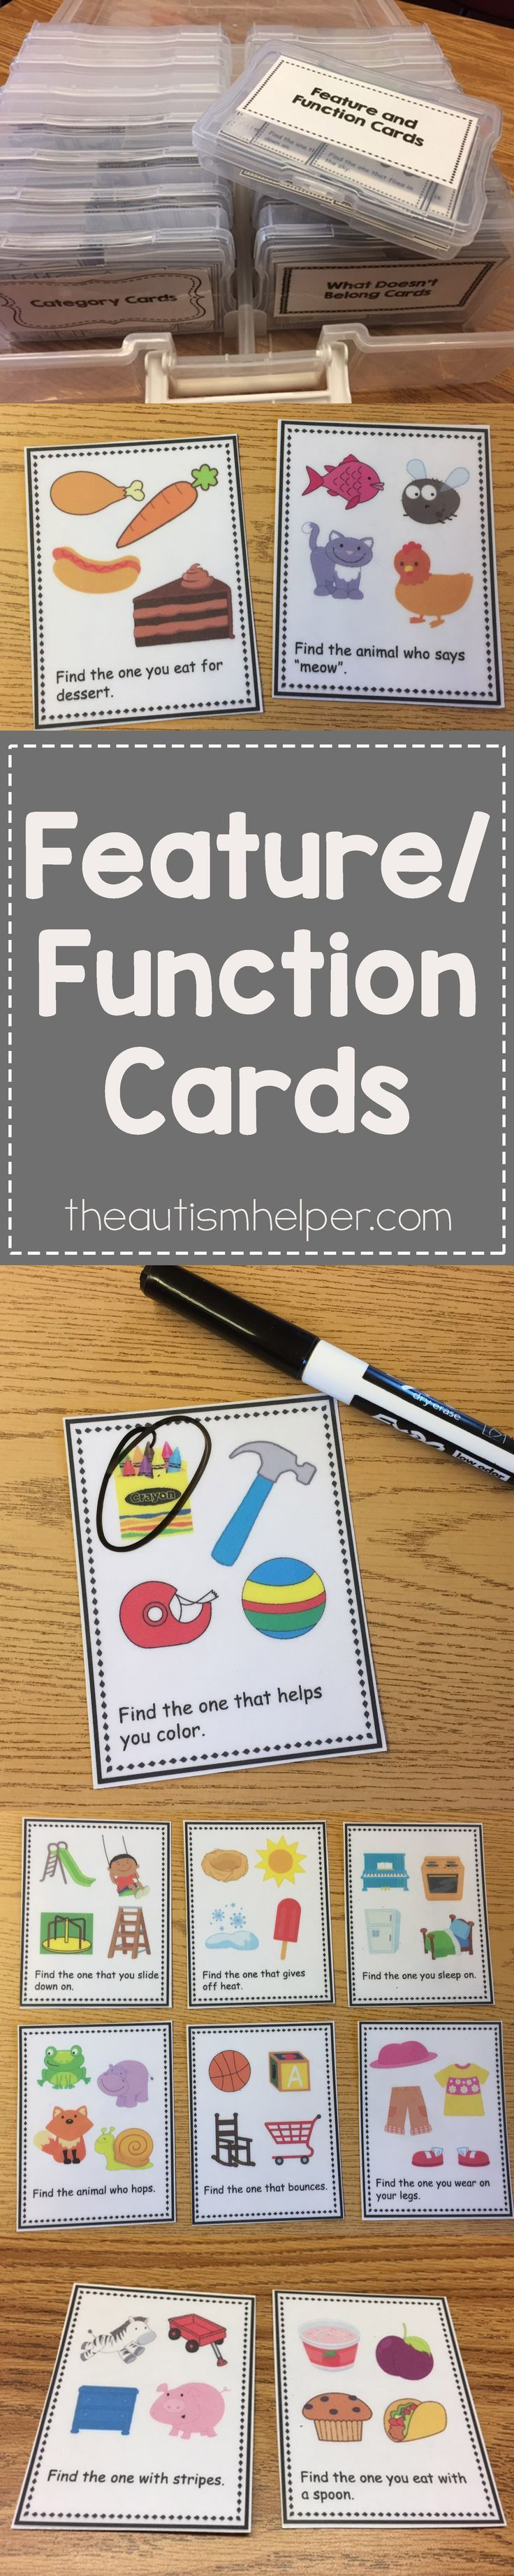 Need to work on building up vocabulary skills?  Here are some great feature/function identification vocabulary task cards to use with your students!! From theautismhelper.com #theautismhelper